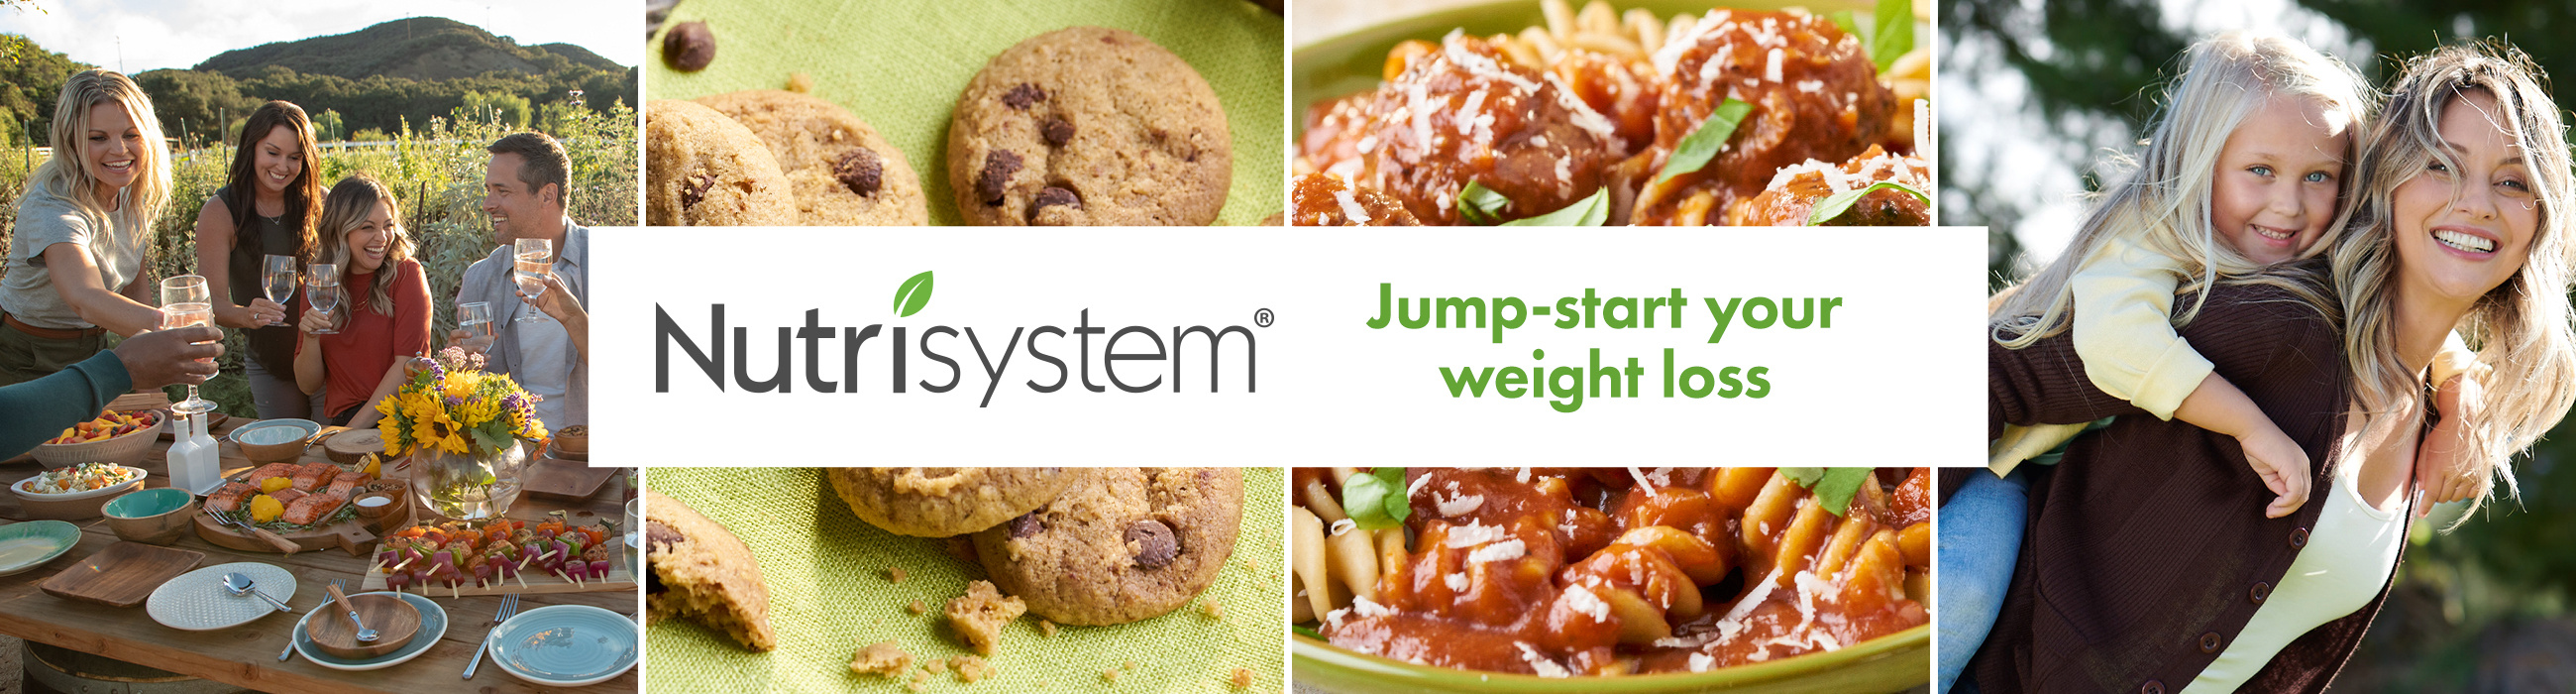 Nutrisystem® - Jump-start your weight loss